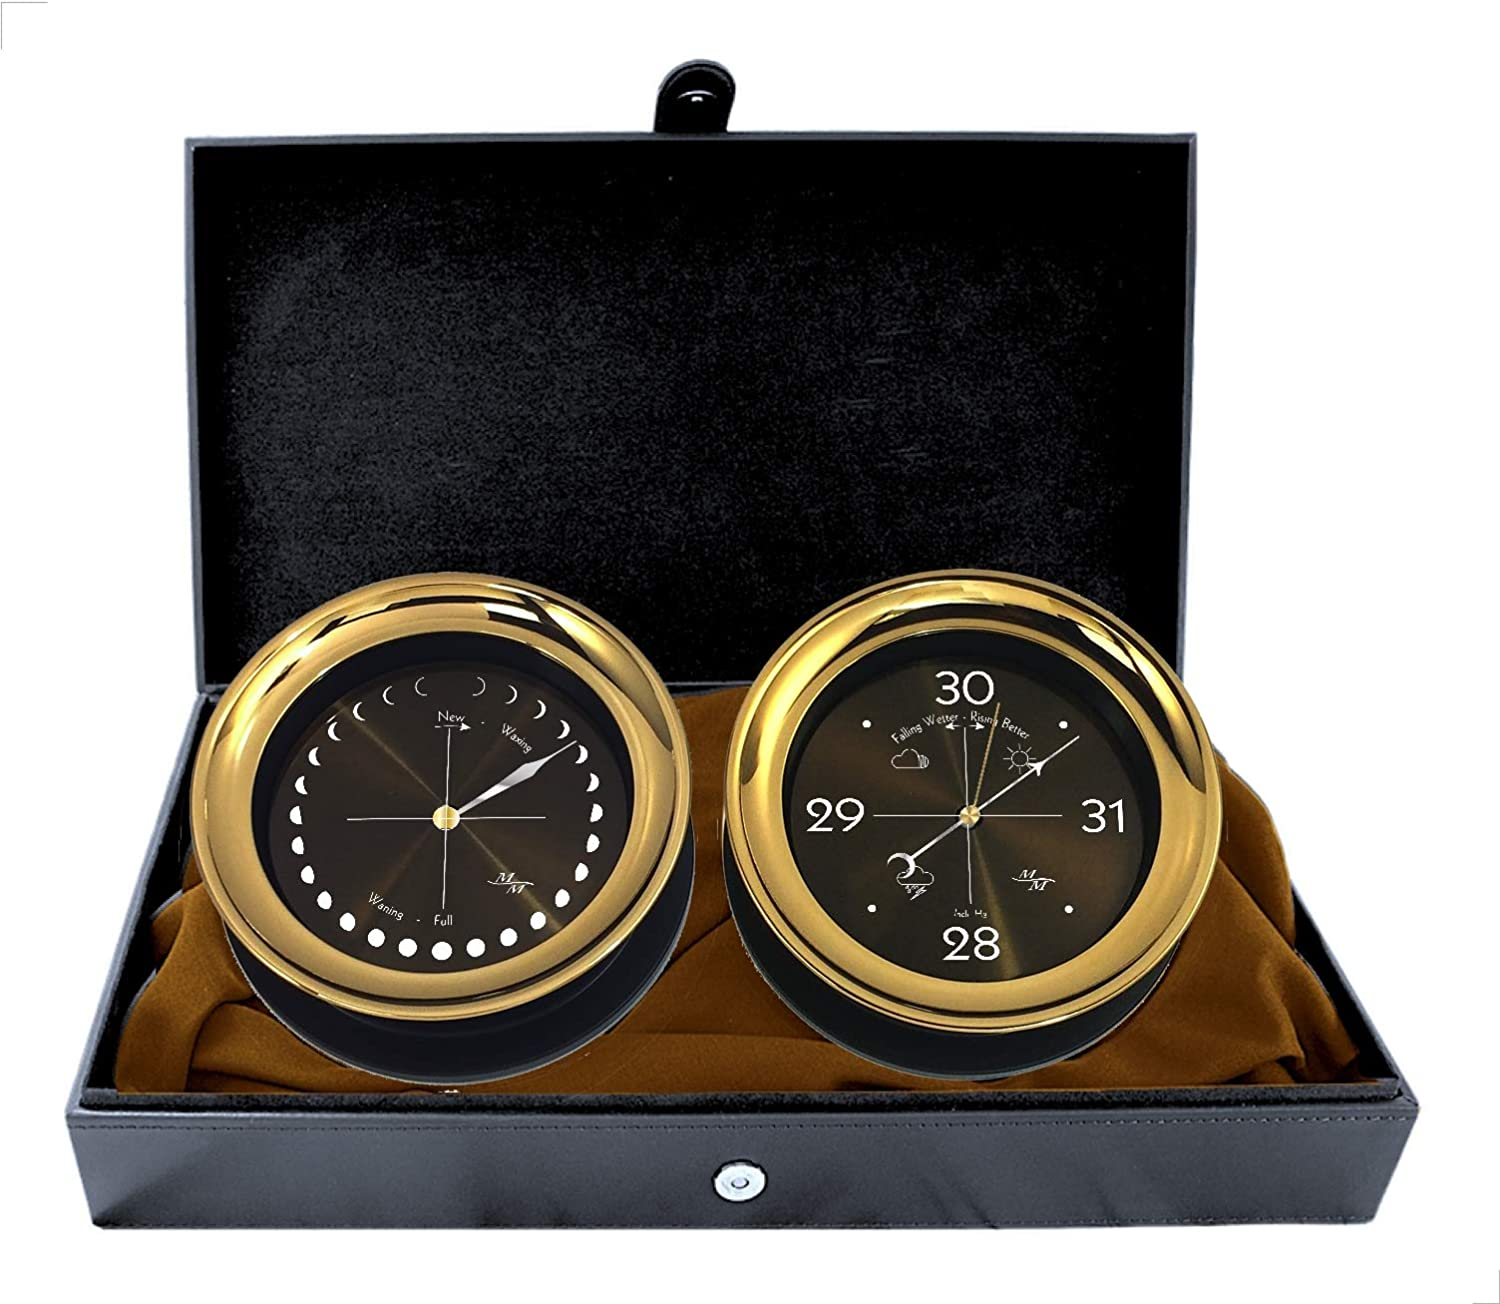 """Image of Barometers Master-Mariner Halo Collection Gift Set, 5.85"""" Diameter Moonphase Clock and Barometer Instruments, Gold and Black Two Tone Finish, Midnight Gold dial"""